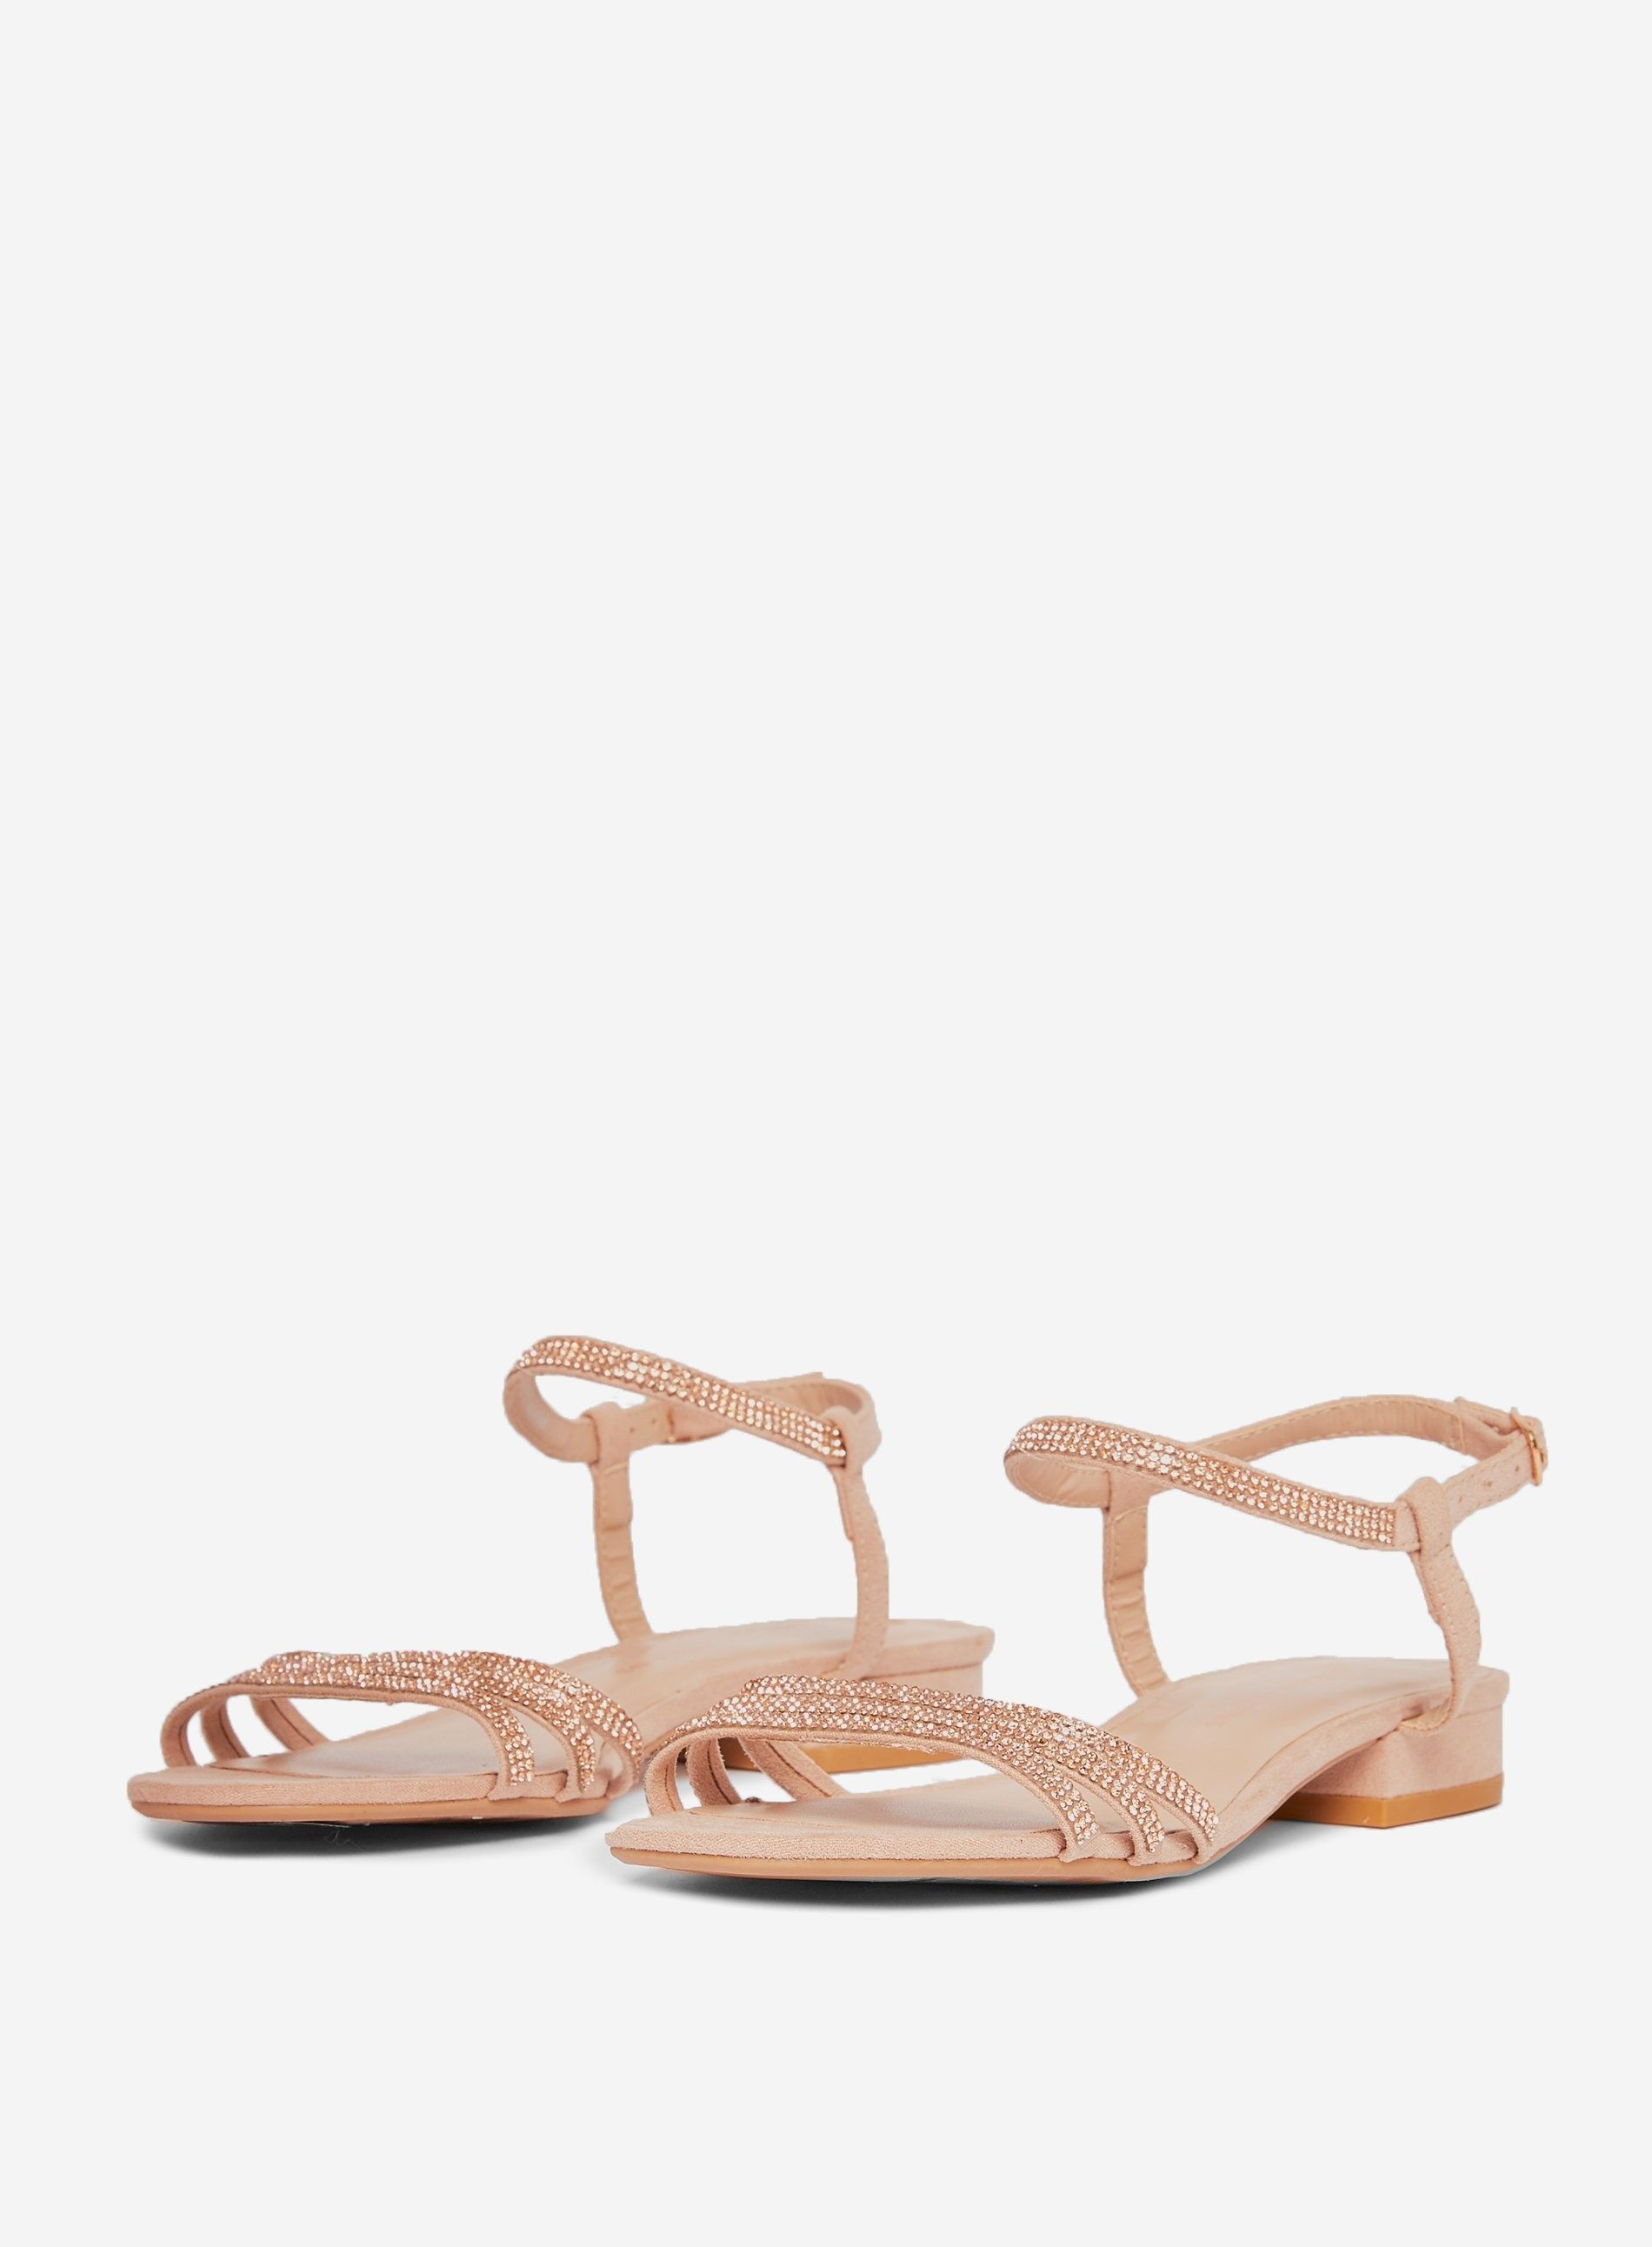 Dorothy Perkins Womens Brown Soo Heeled Sandals Round Toe Buckle Casual Shoes